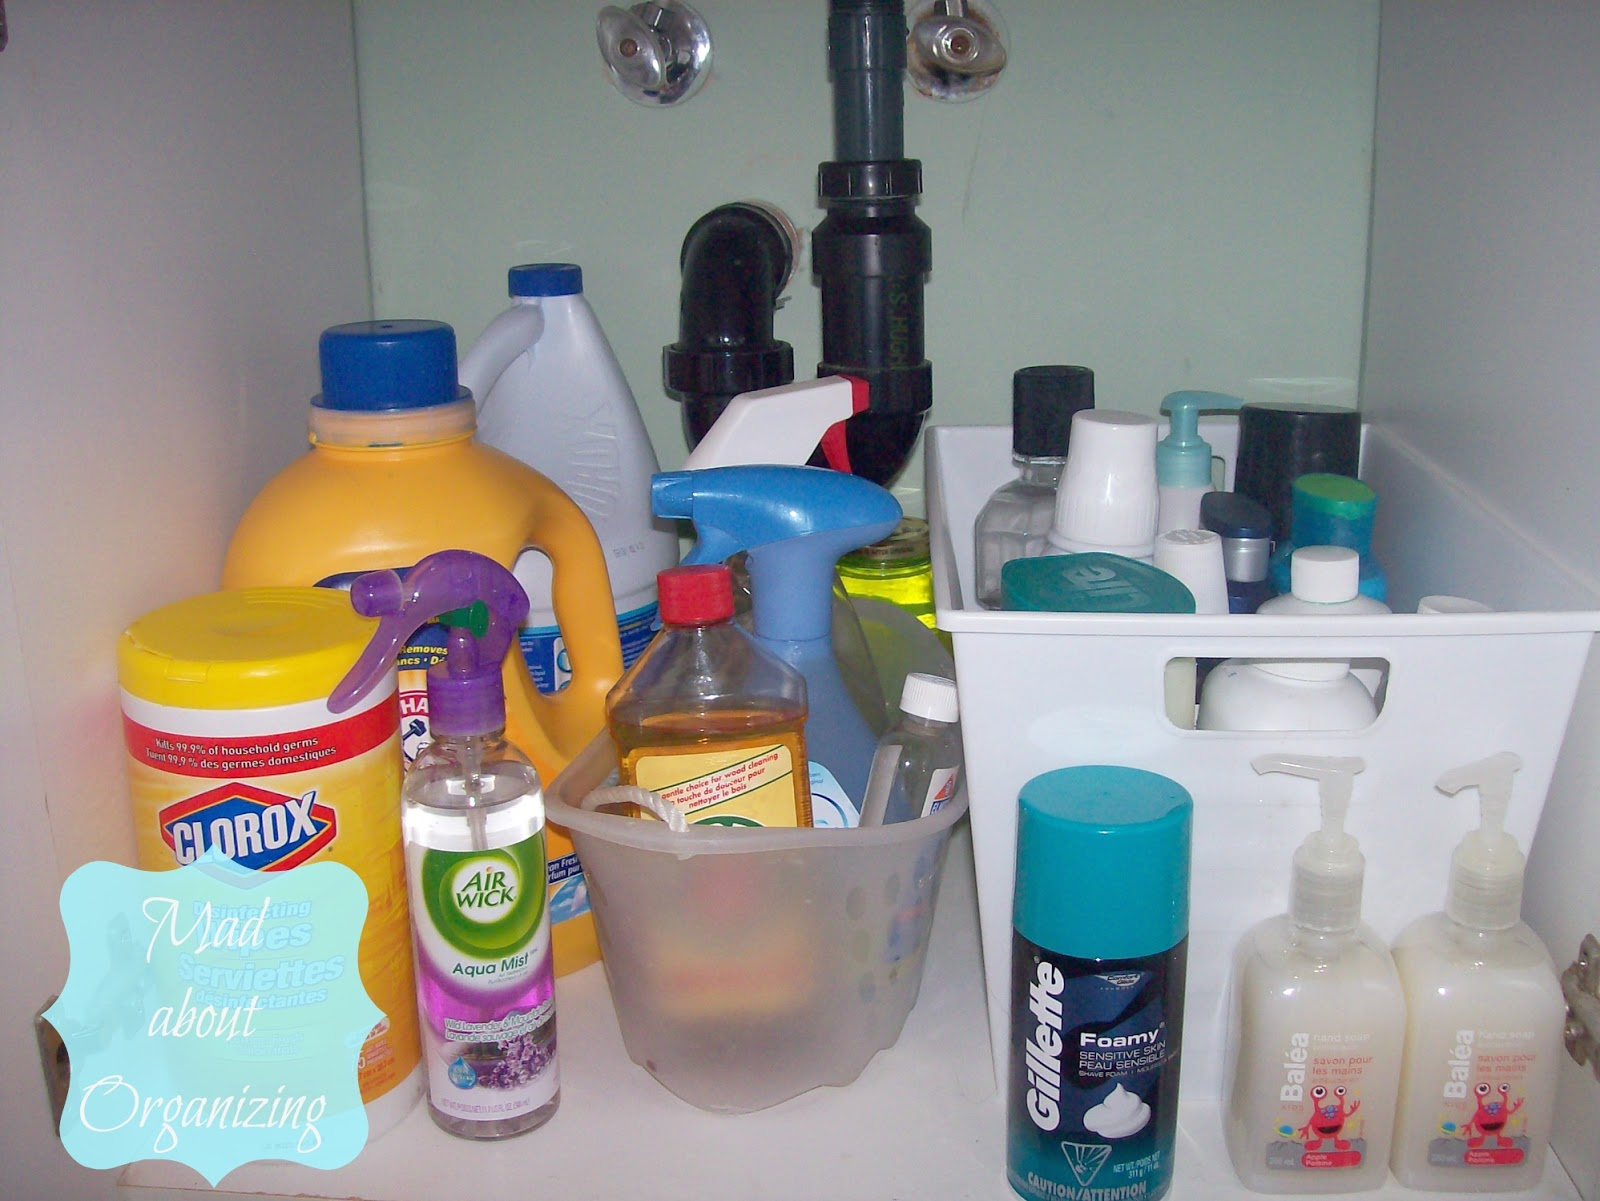 How to Organize a Small Bathroom Under Sink Cabinet